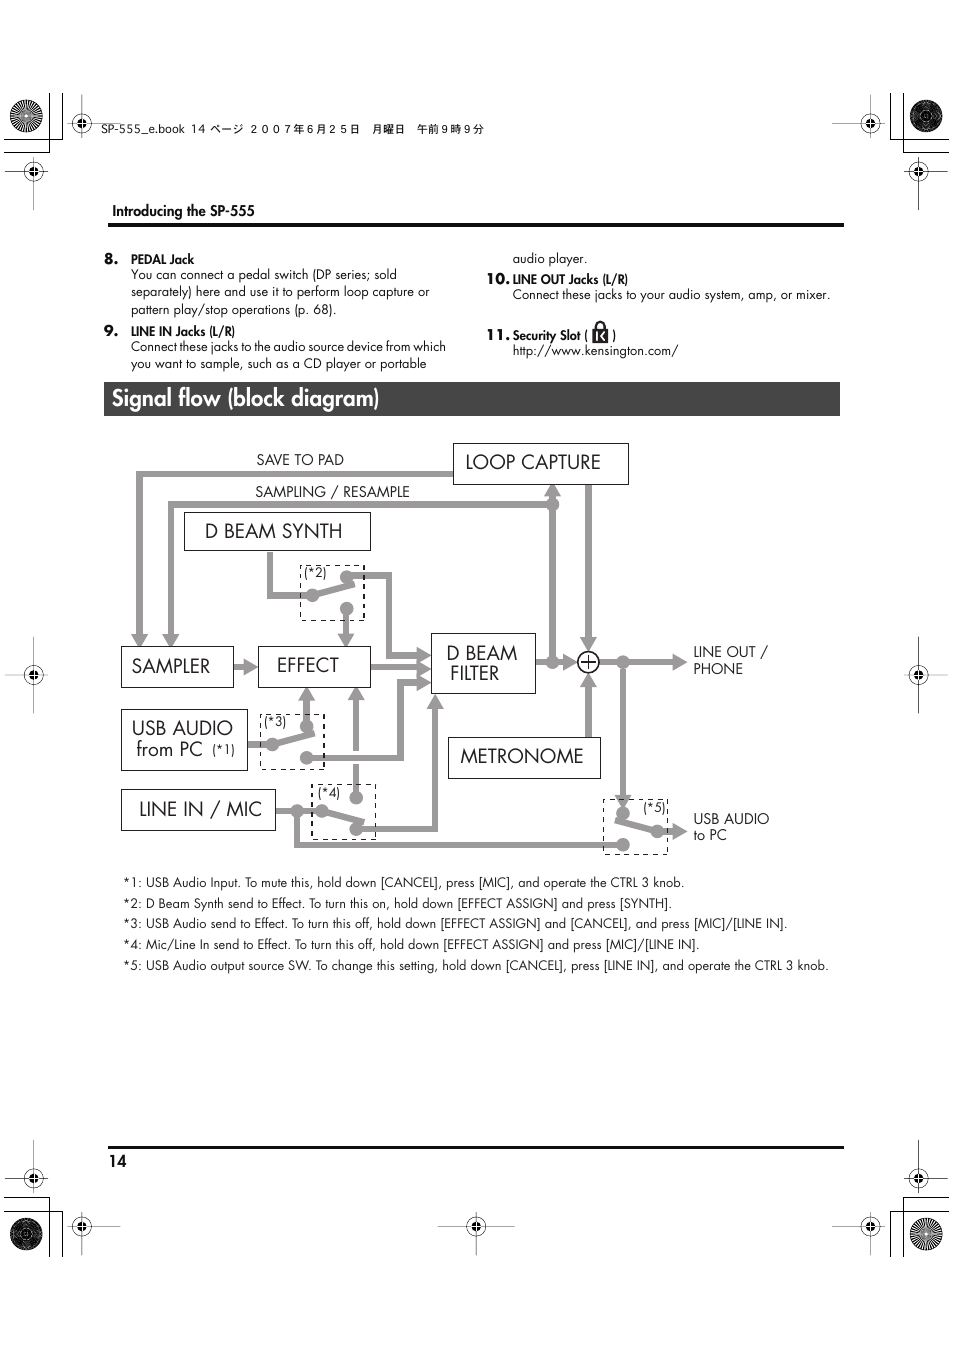 medium resolution of signal flow block diagram d beam synth effect usb audio from pc line in mic metronome d beam filter roland sp 555 user manual page 14 80